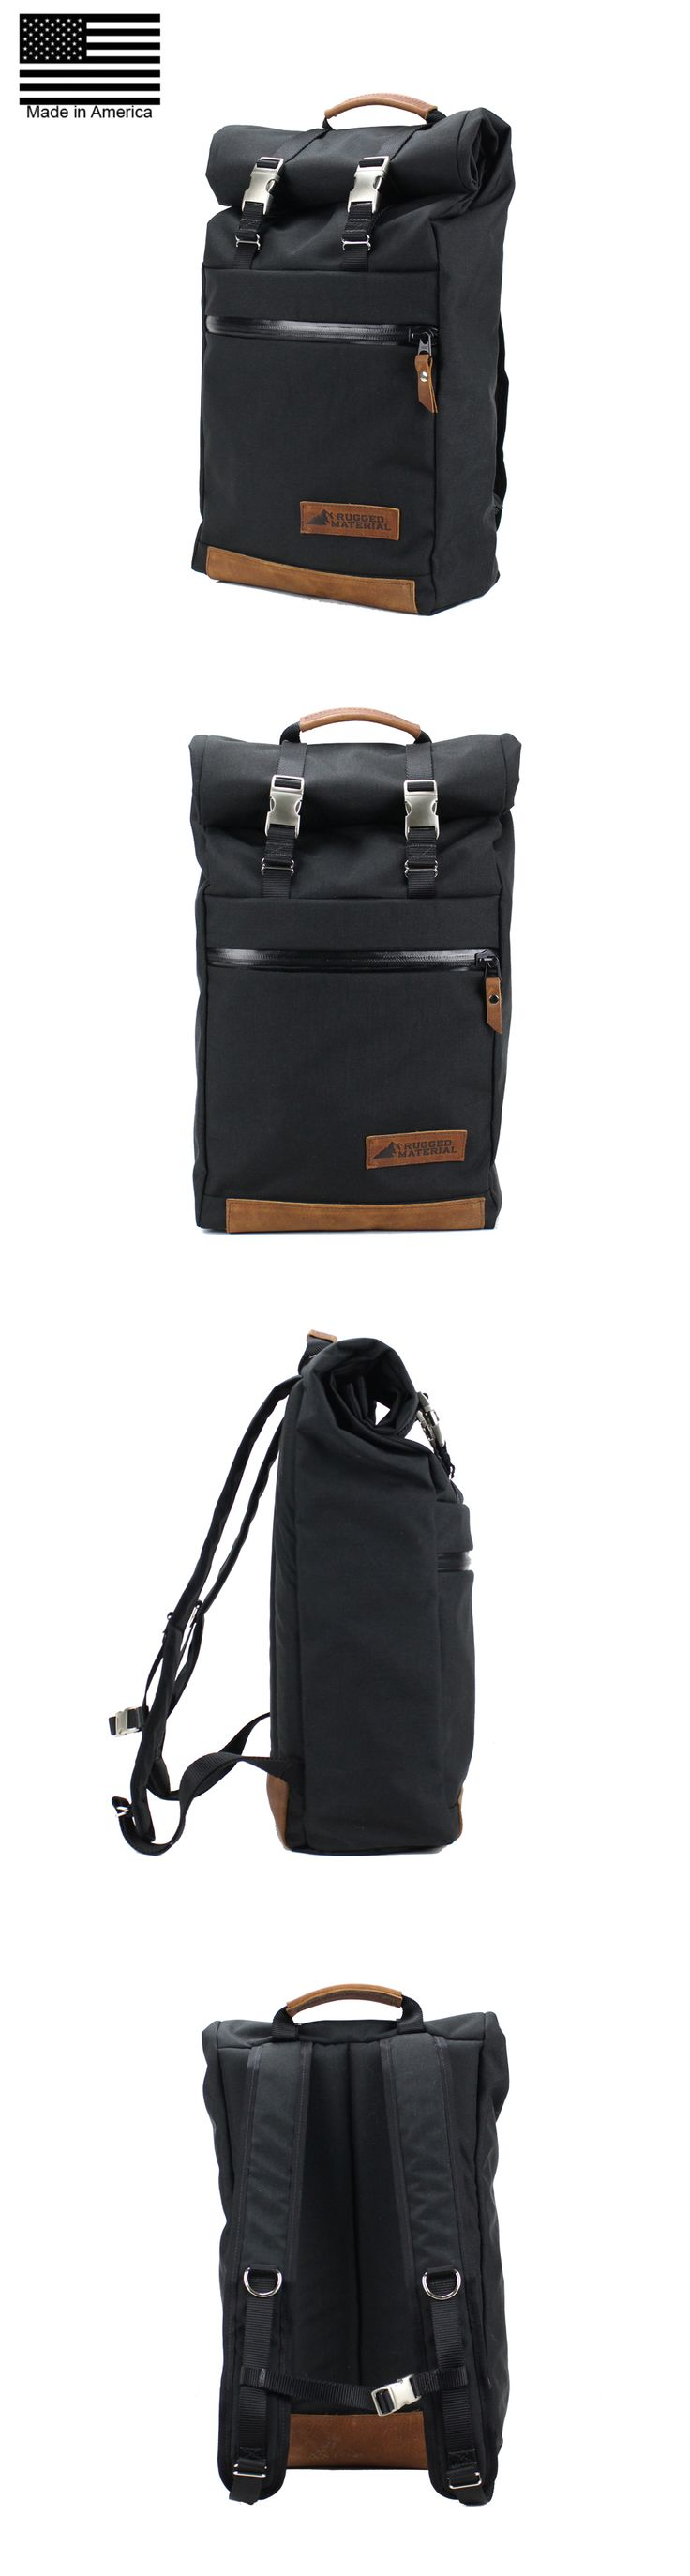 Roll Top Backpack. Its Expandable, weatherproof and made for the bicycle or motorcycle commuter.